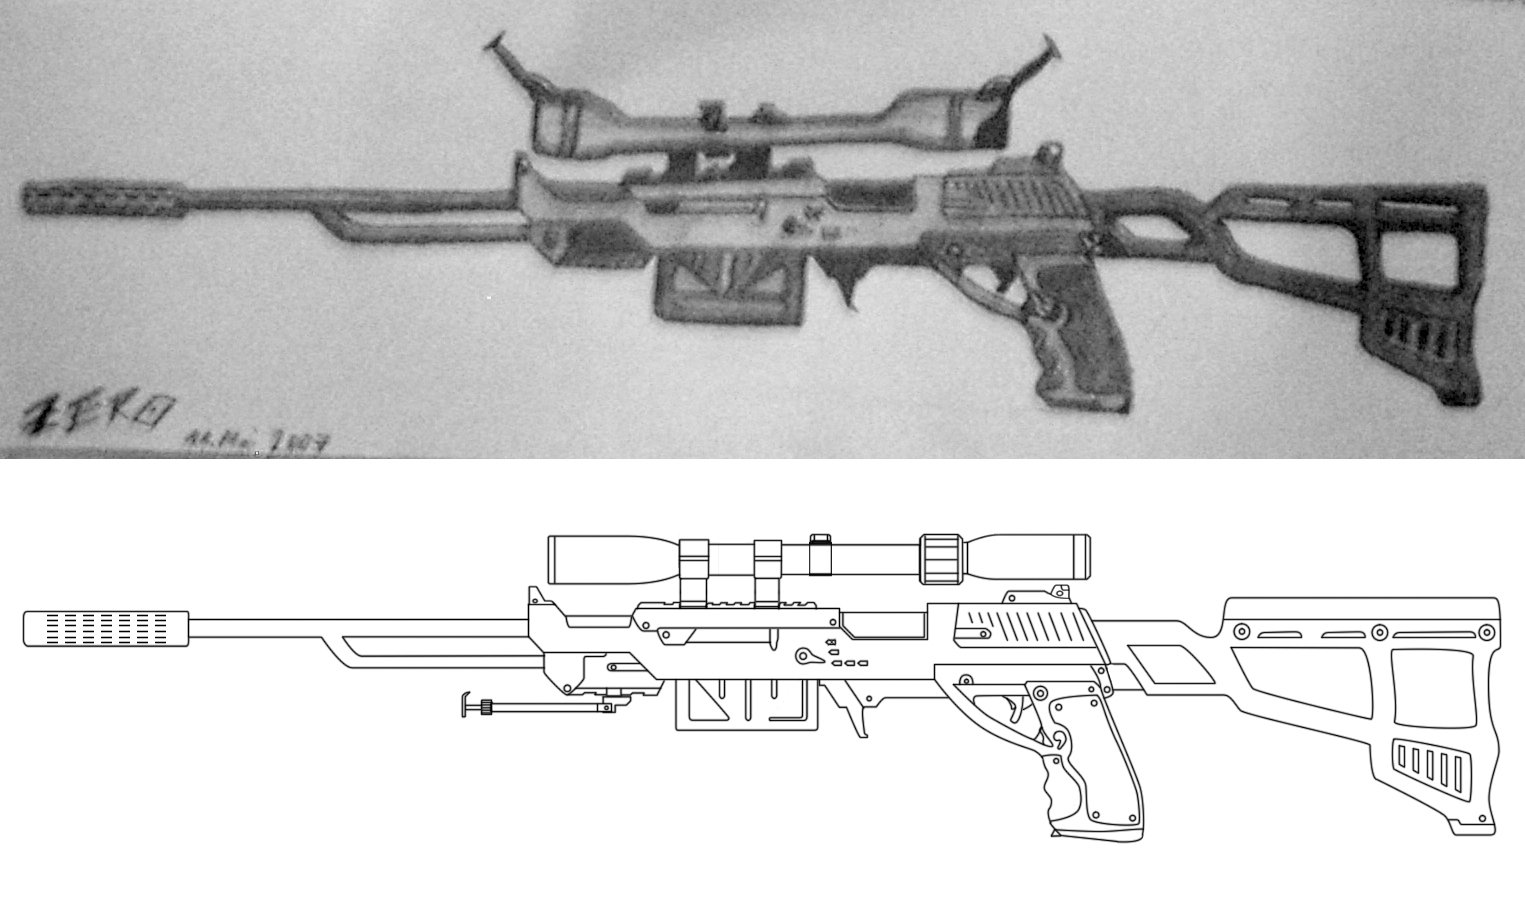 Drawn weapon sniper rifle Rifle by Rifle Marvbec Sniper